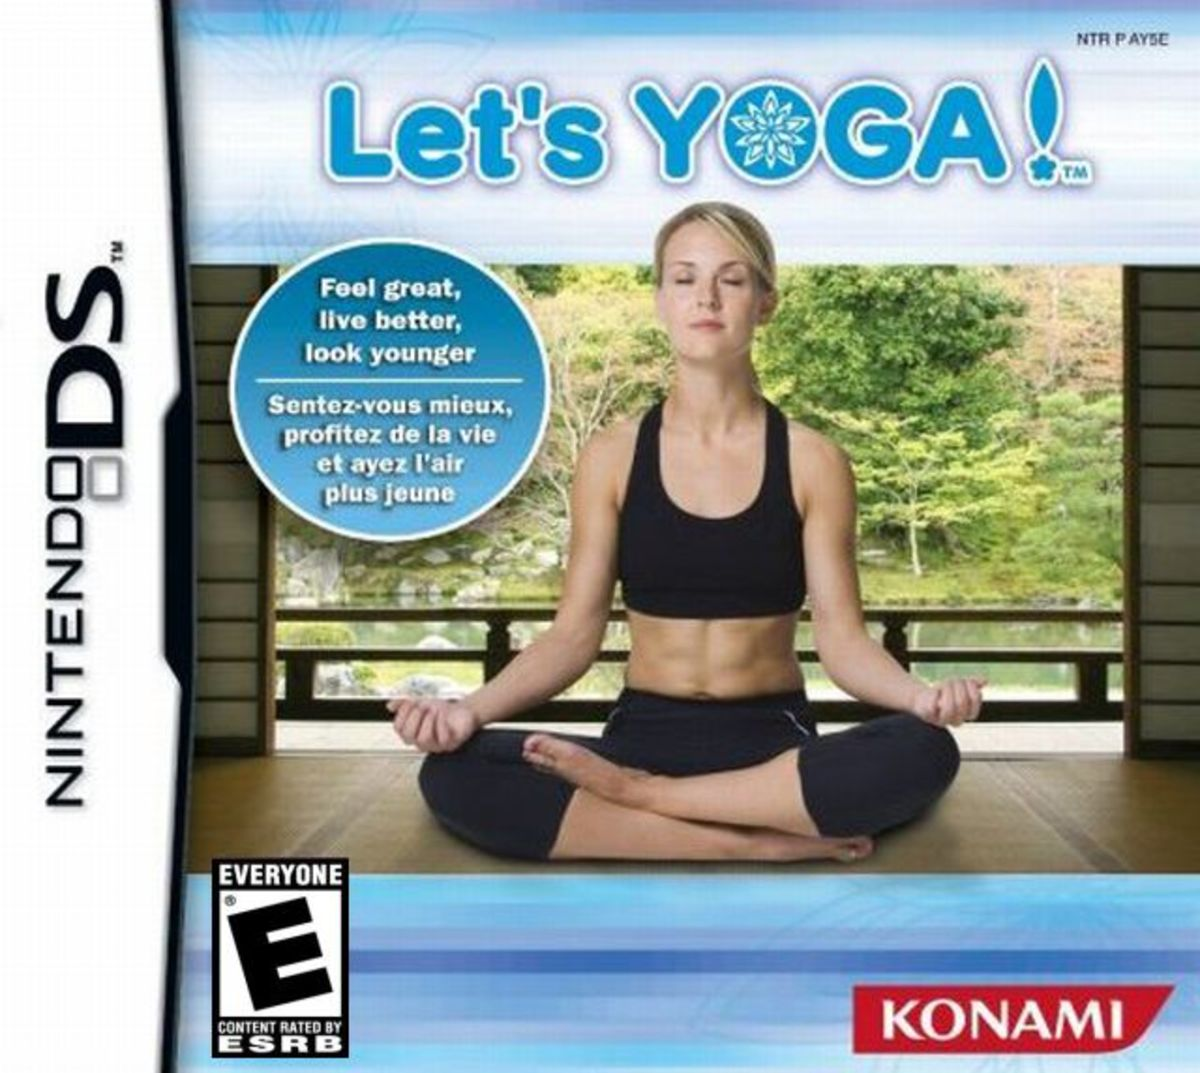 Let's Yoga: Nintendo DS Fitness Game Review